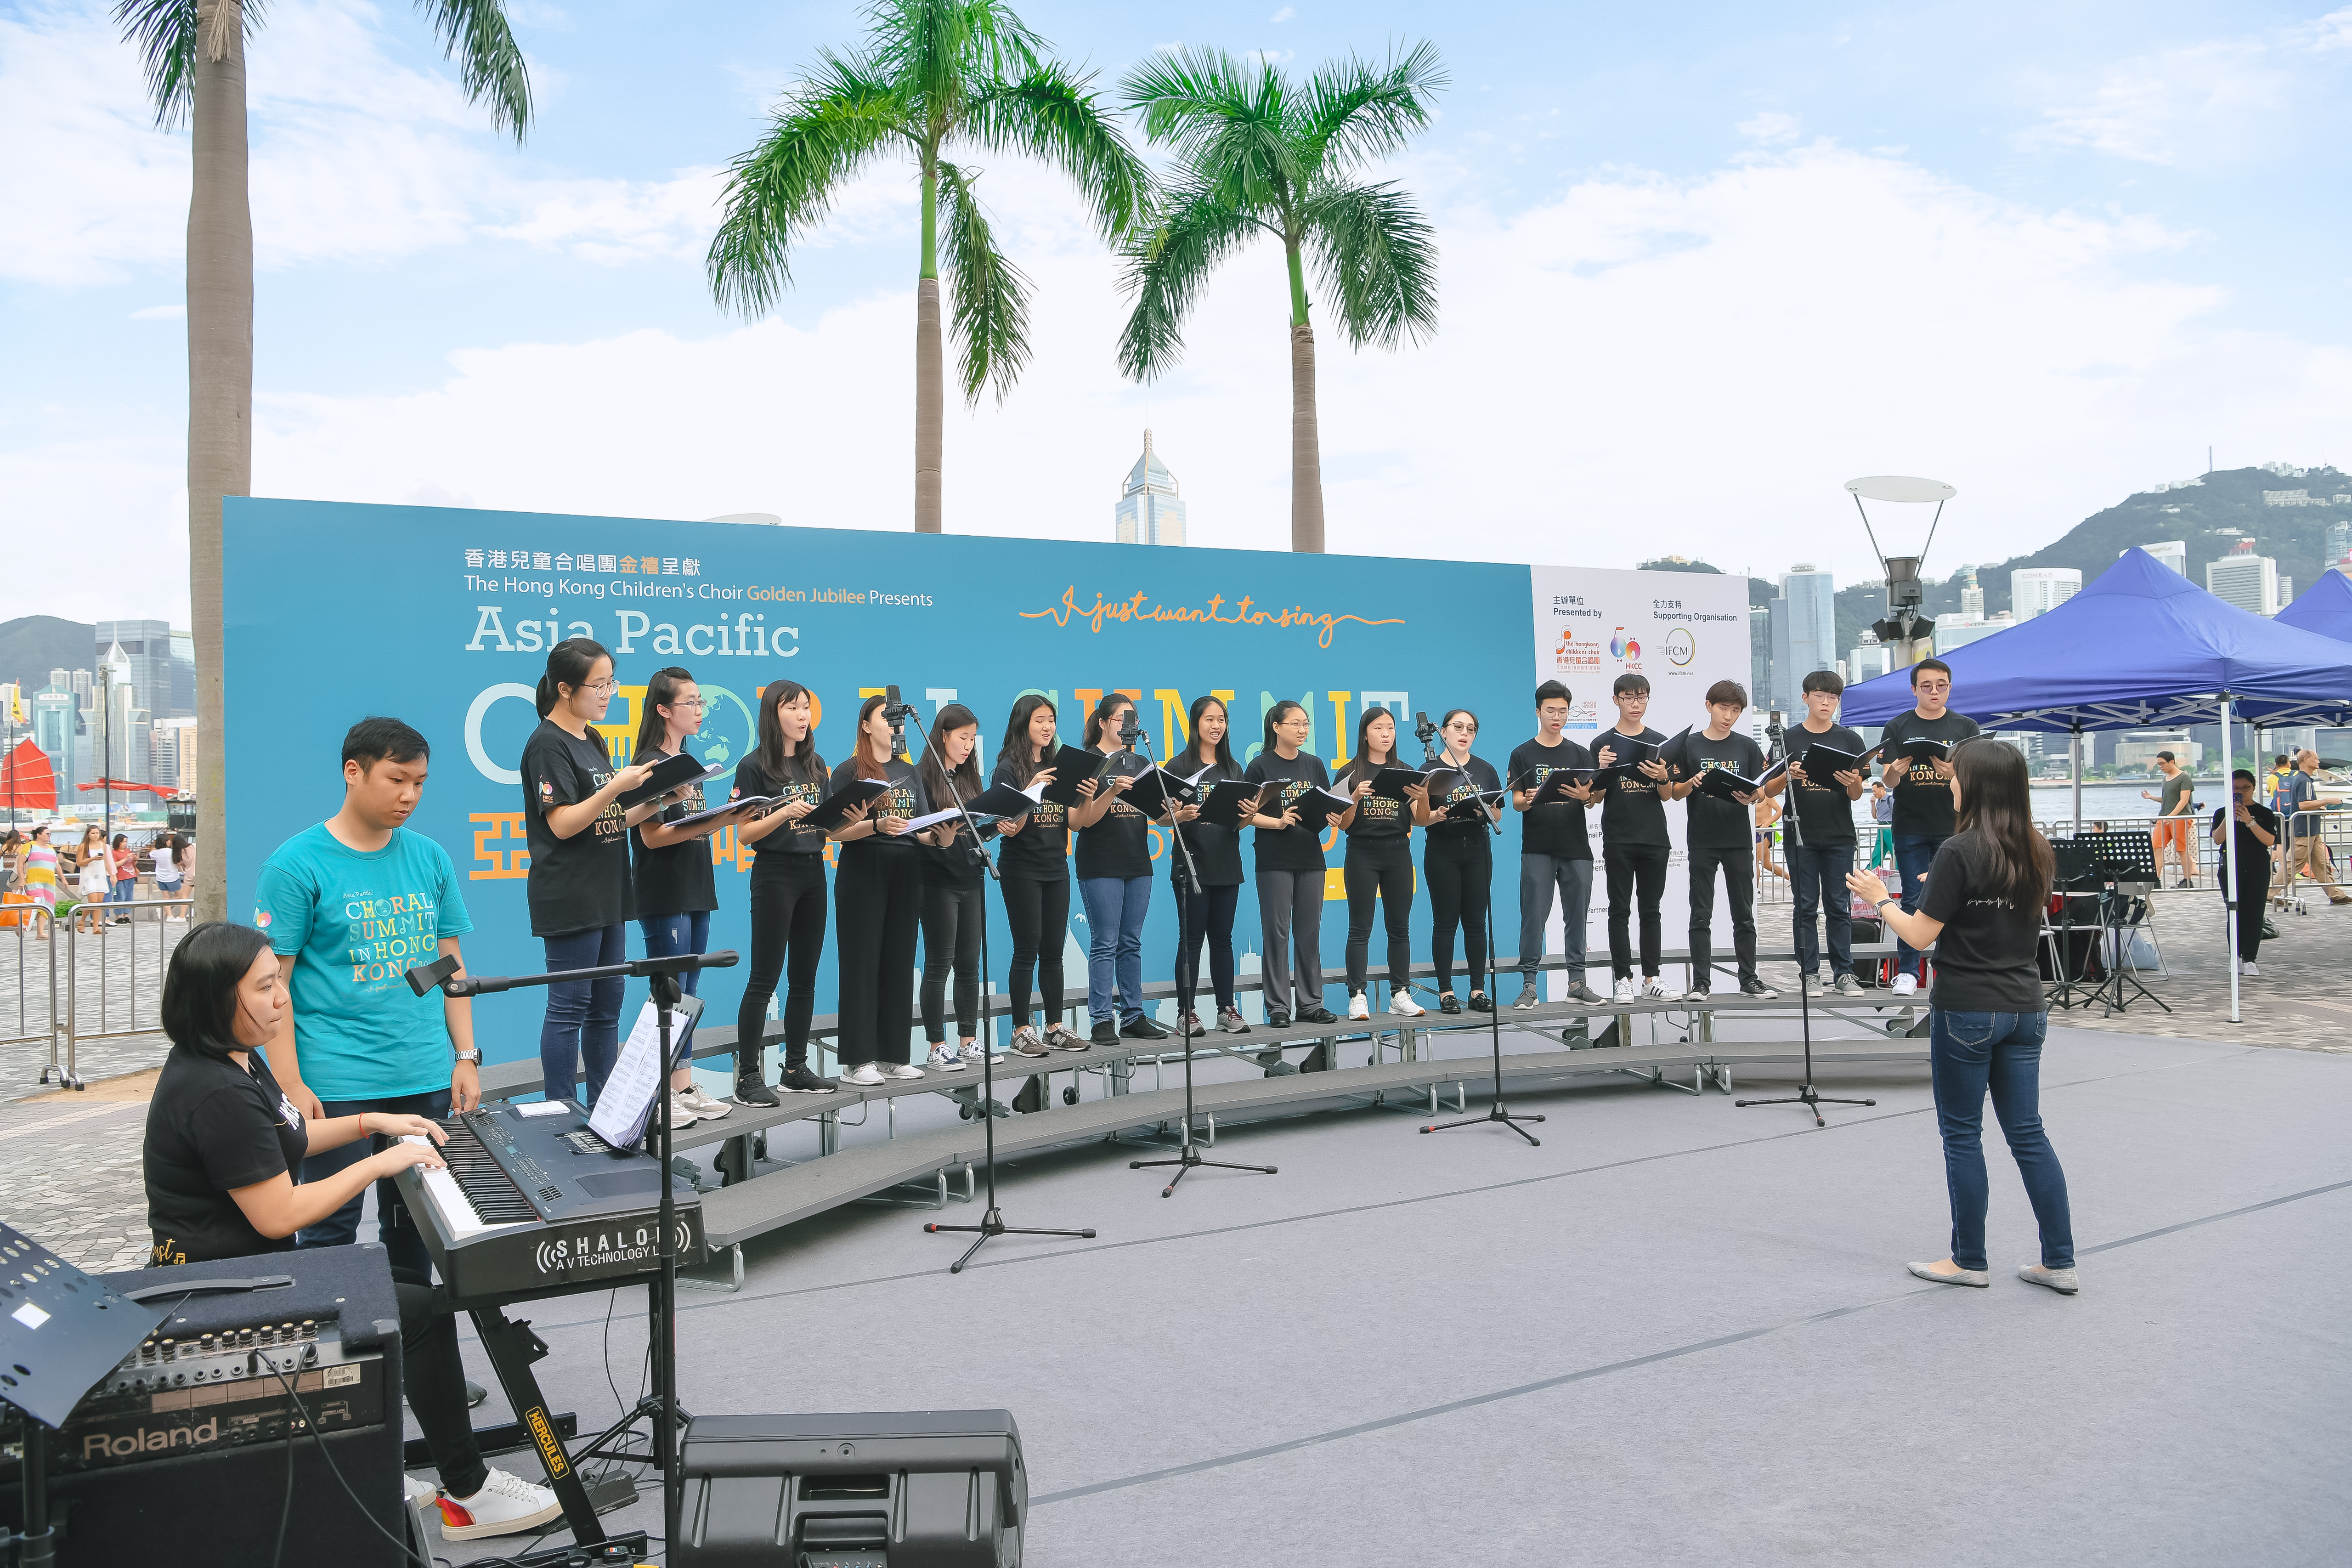 https://hkcchoir.org/sites/default/files/chamber_youth_2019_choral_summit.jpg